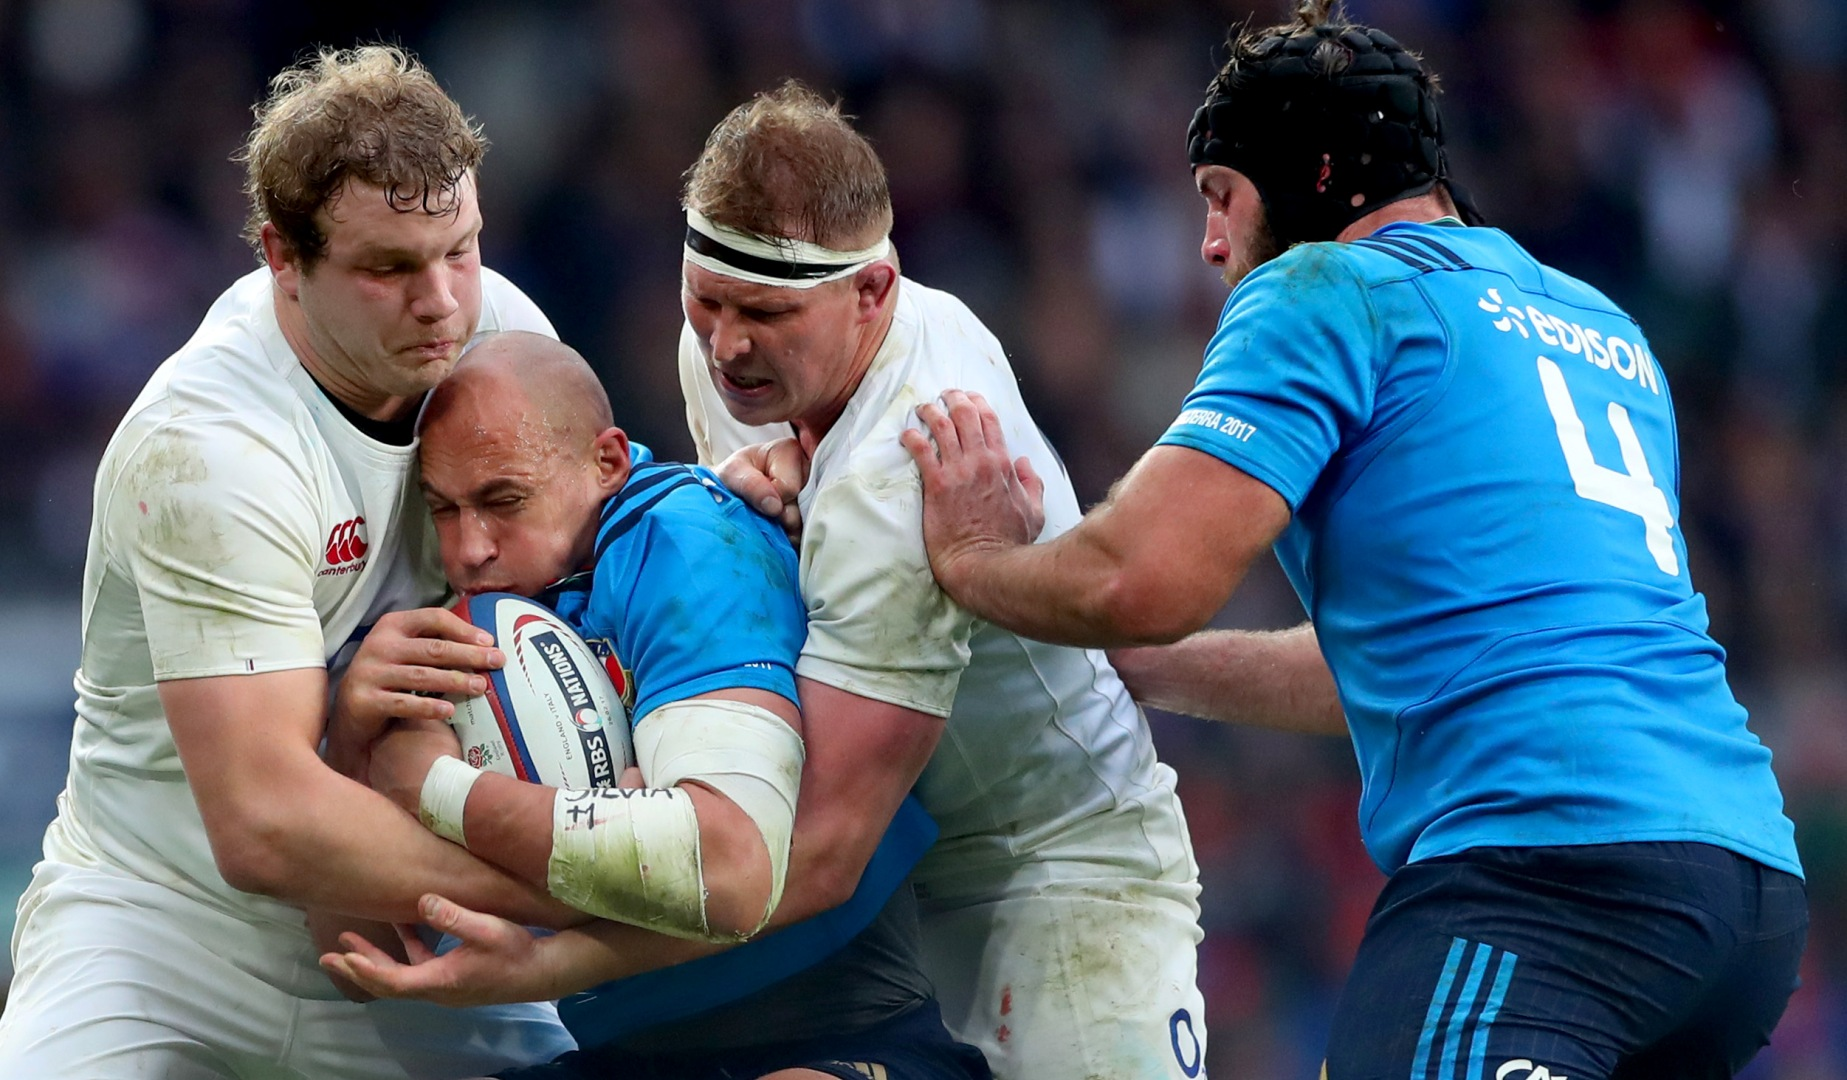 LionsWatch: Launchbury admits Italy ruck tactics were a challenge